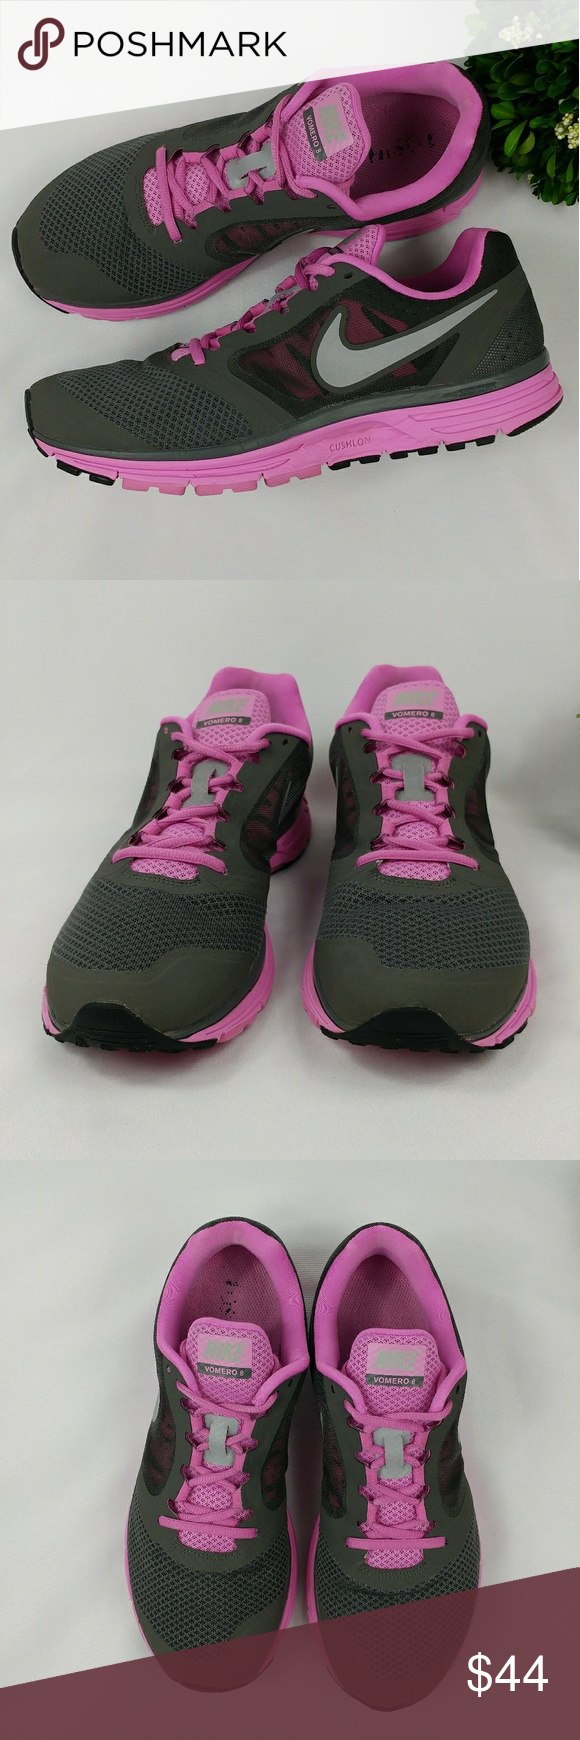 Nike VOMERO 8 womens athletic shoes